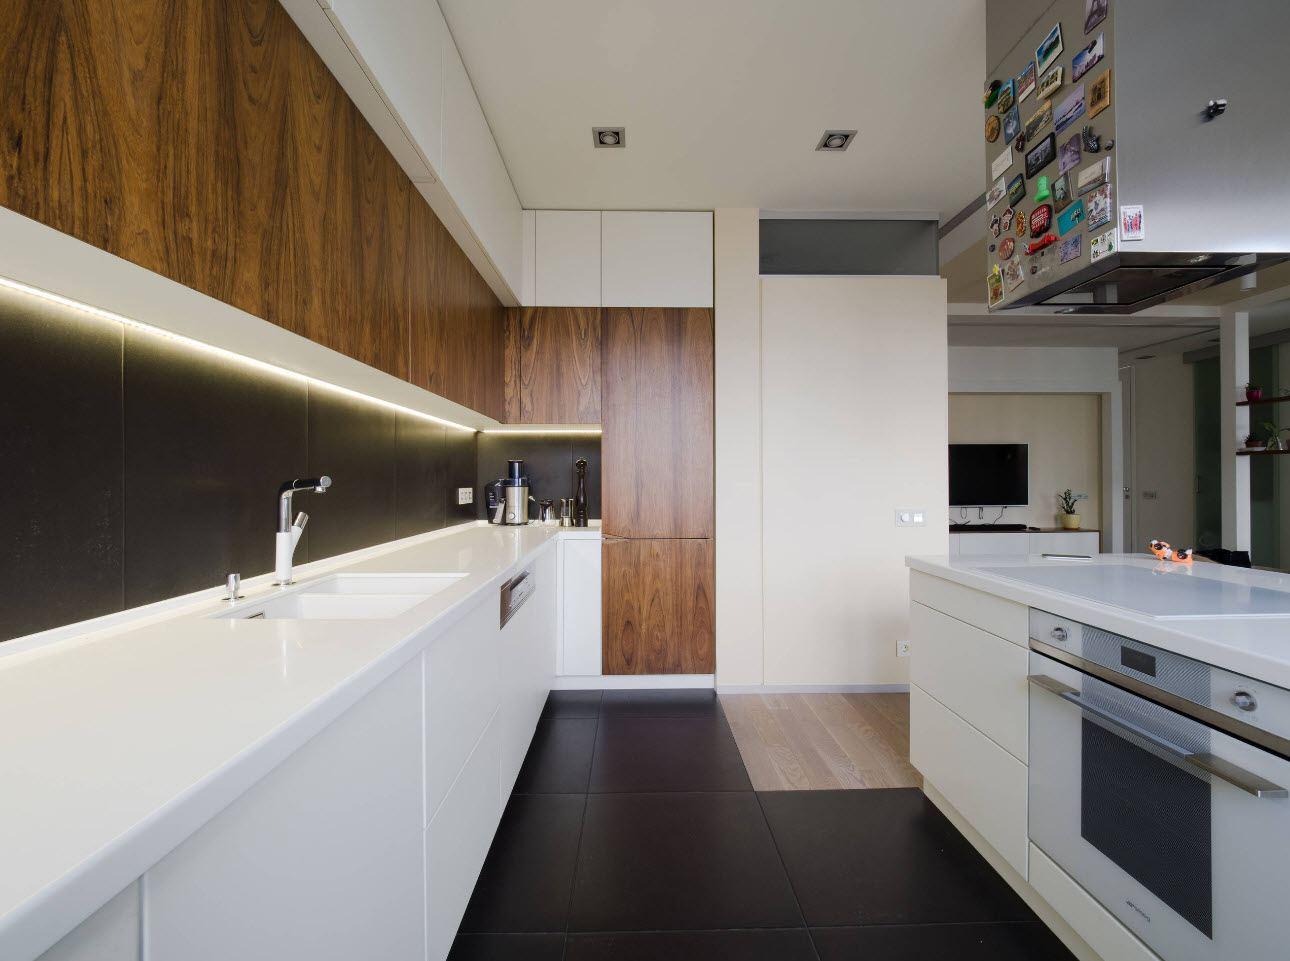 90 Square Feet Kitchen Interior Design Ideas & Examples. Modern styled galley kitchen in two main colors